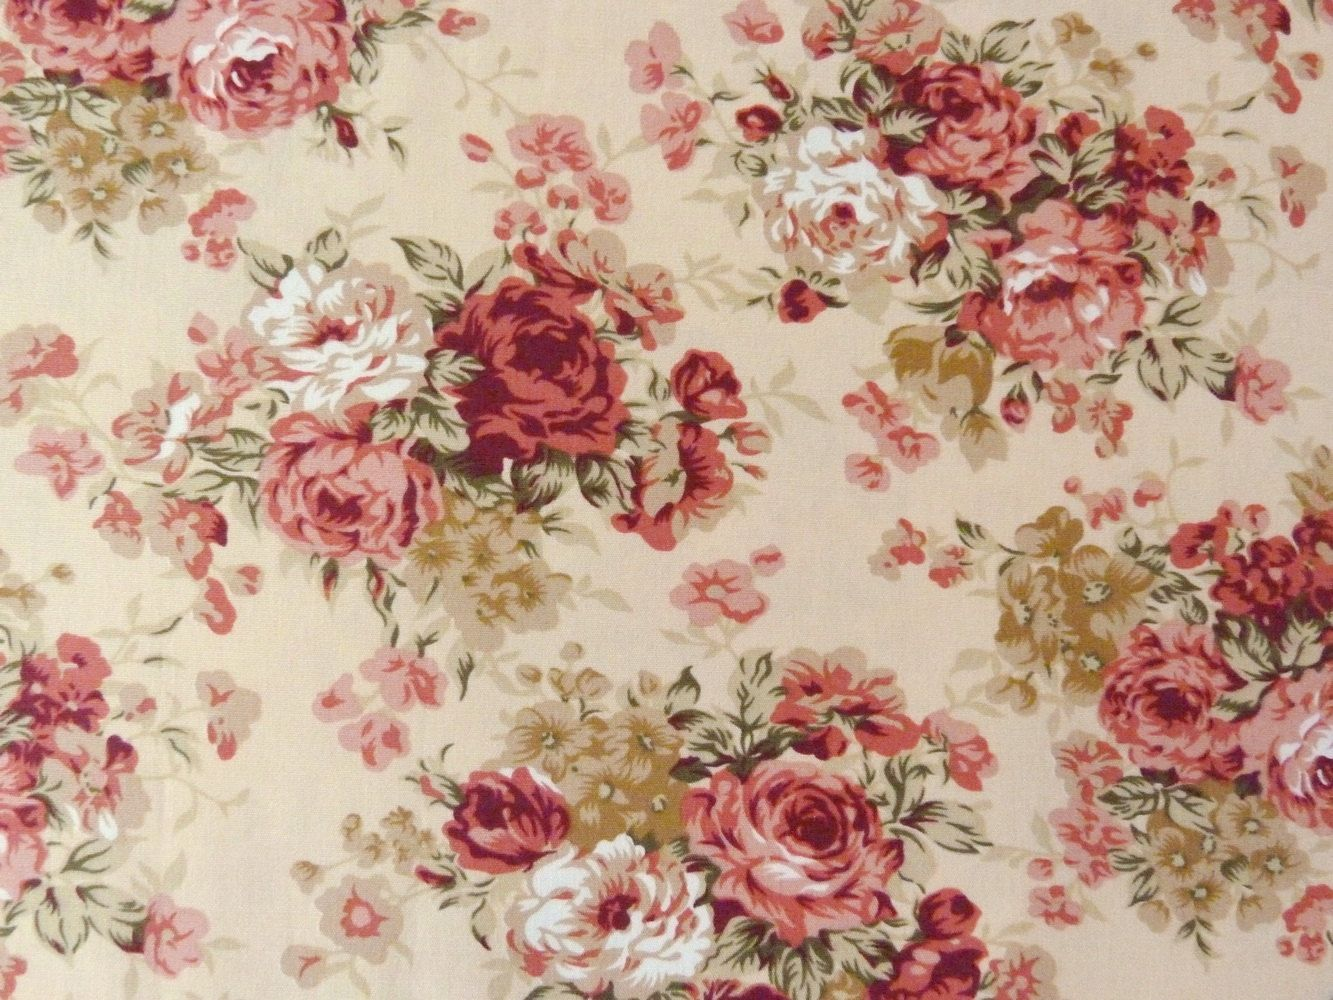 Old Country Roses Wallpaper By Fragrance A Pierre Blue English Rose Photos Roses A